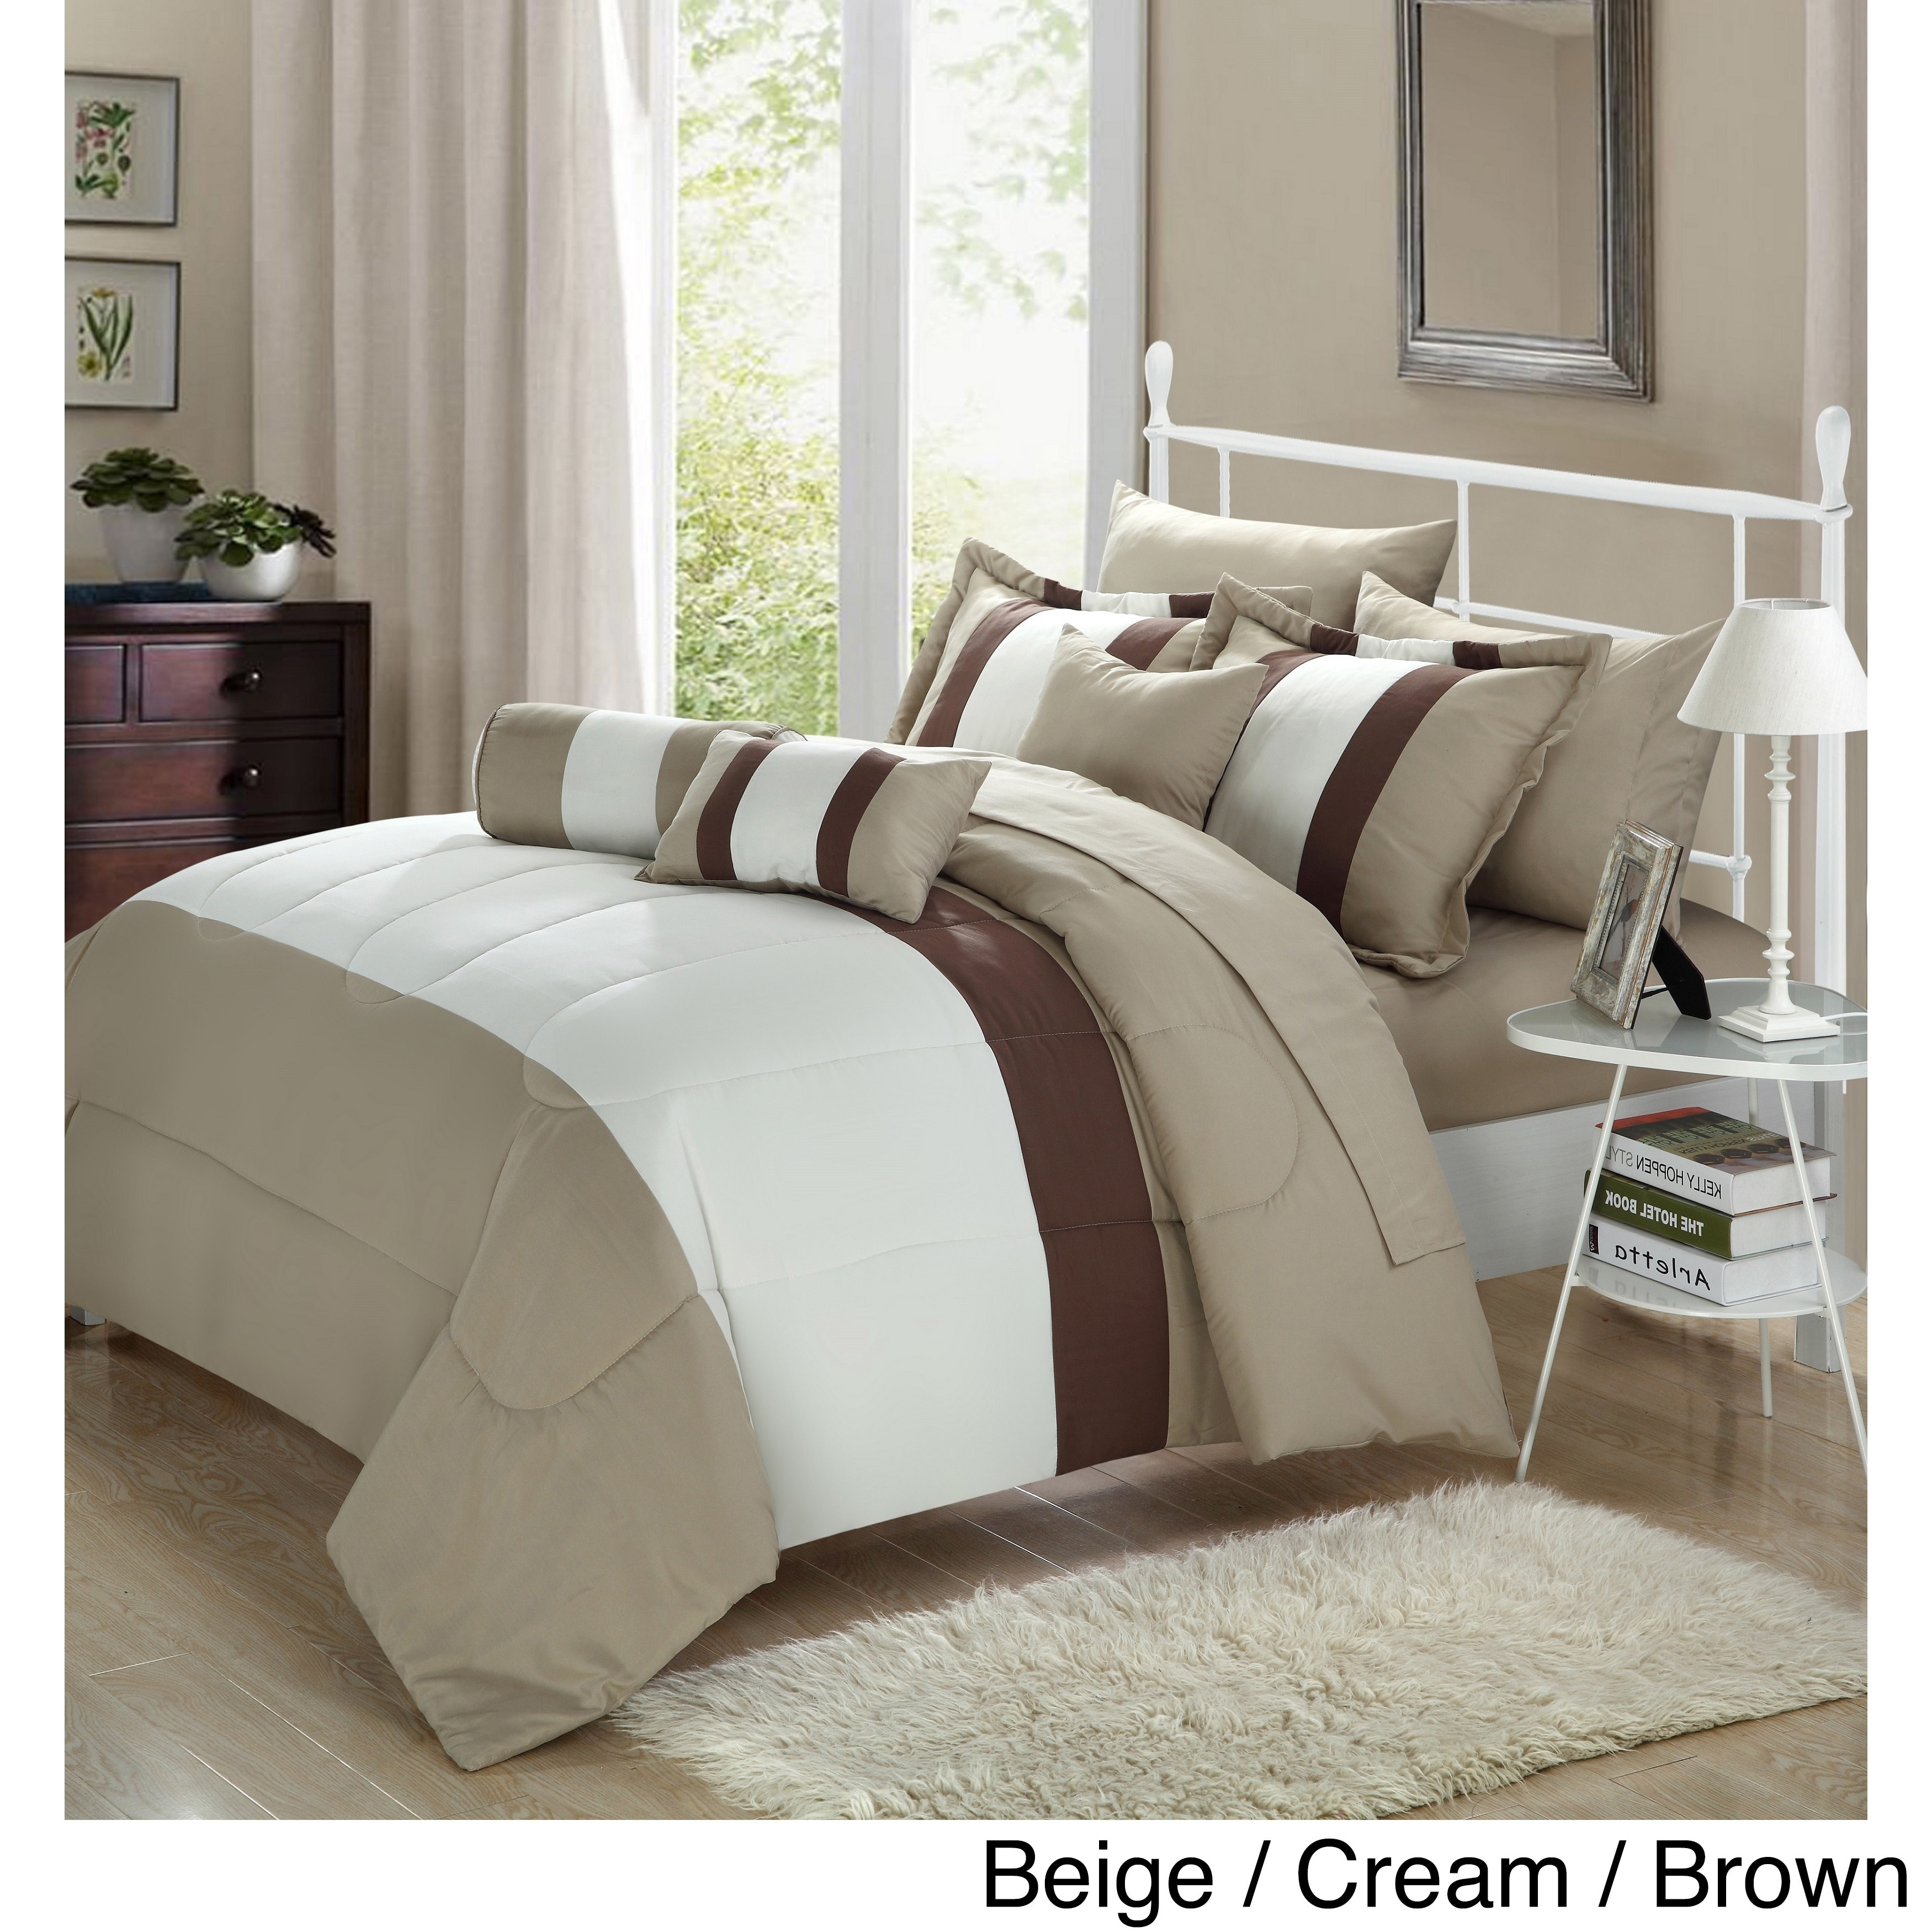 Size king brown comforter sets find great fashion bedding deals shopping at overstock com